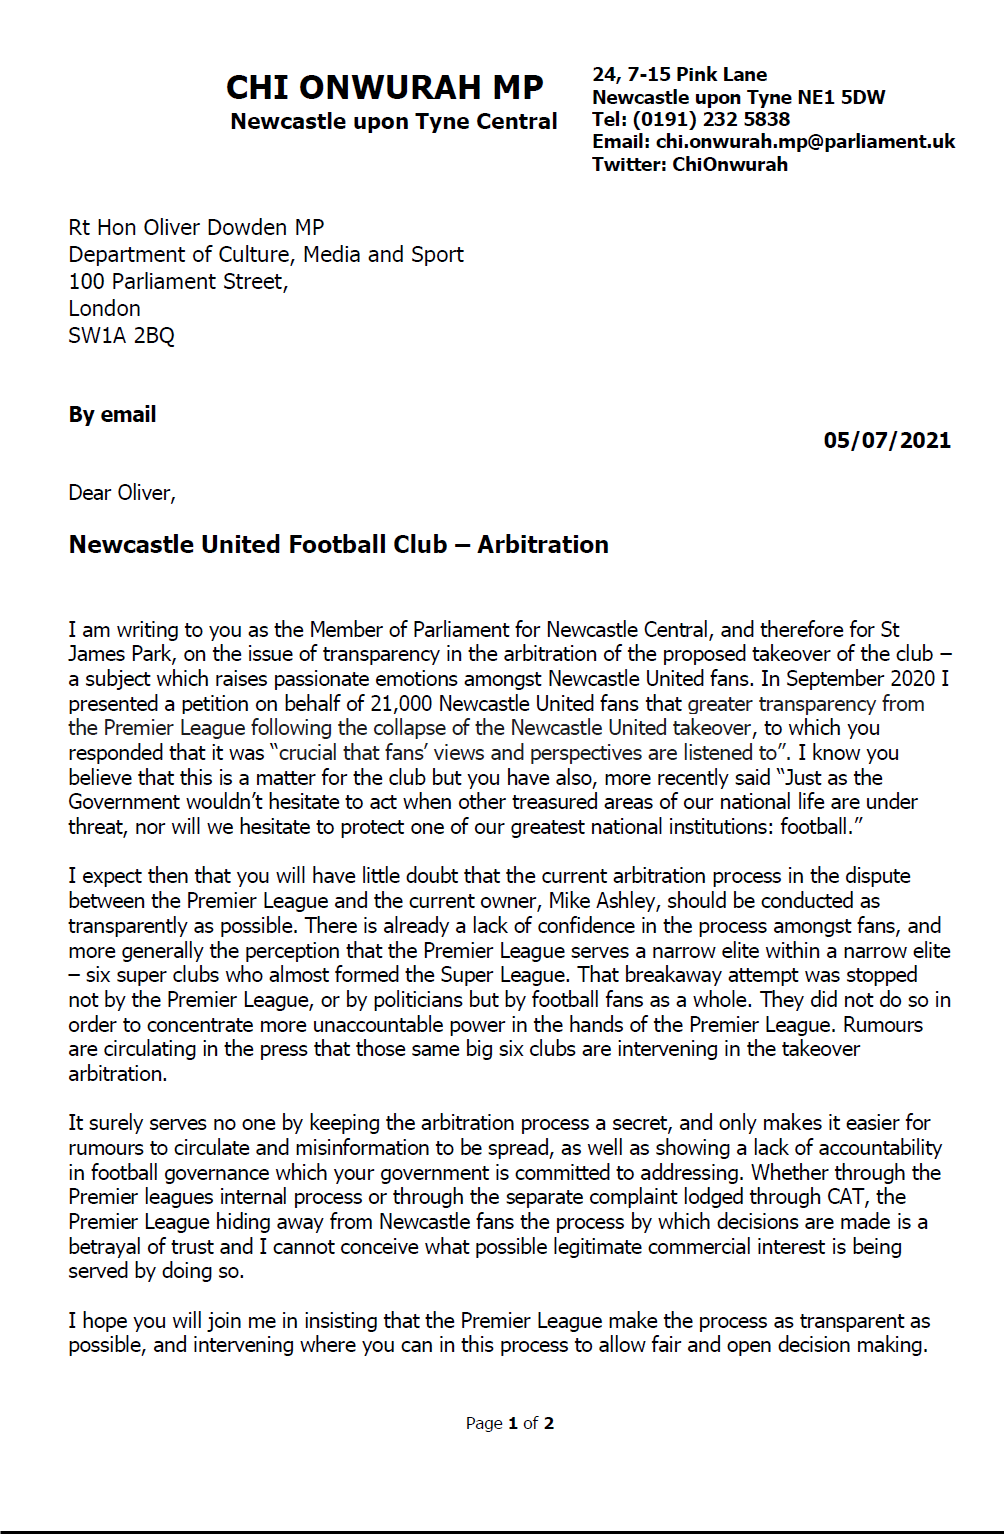 Chi writes to Minister on NUFC takeover arbitration transparency